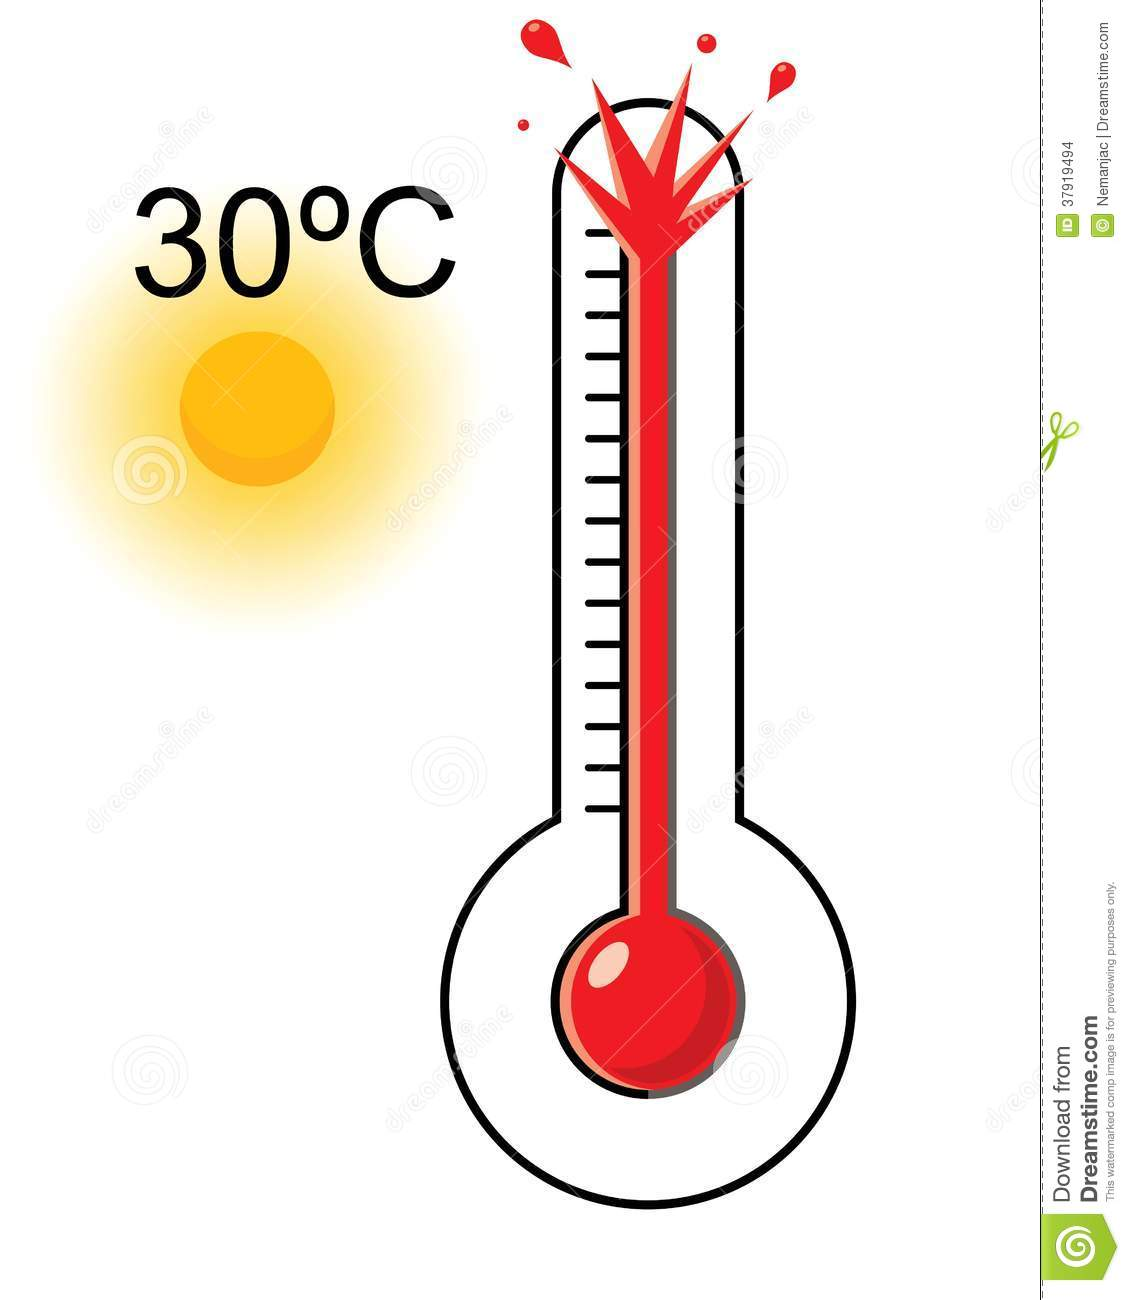 1130x1300 Warmth Clipart Thermometer